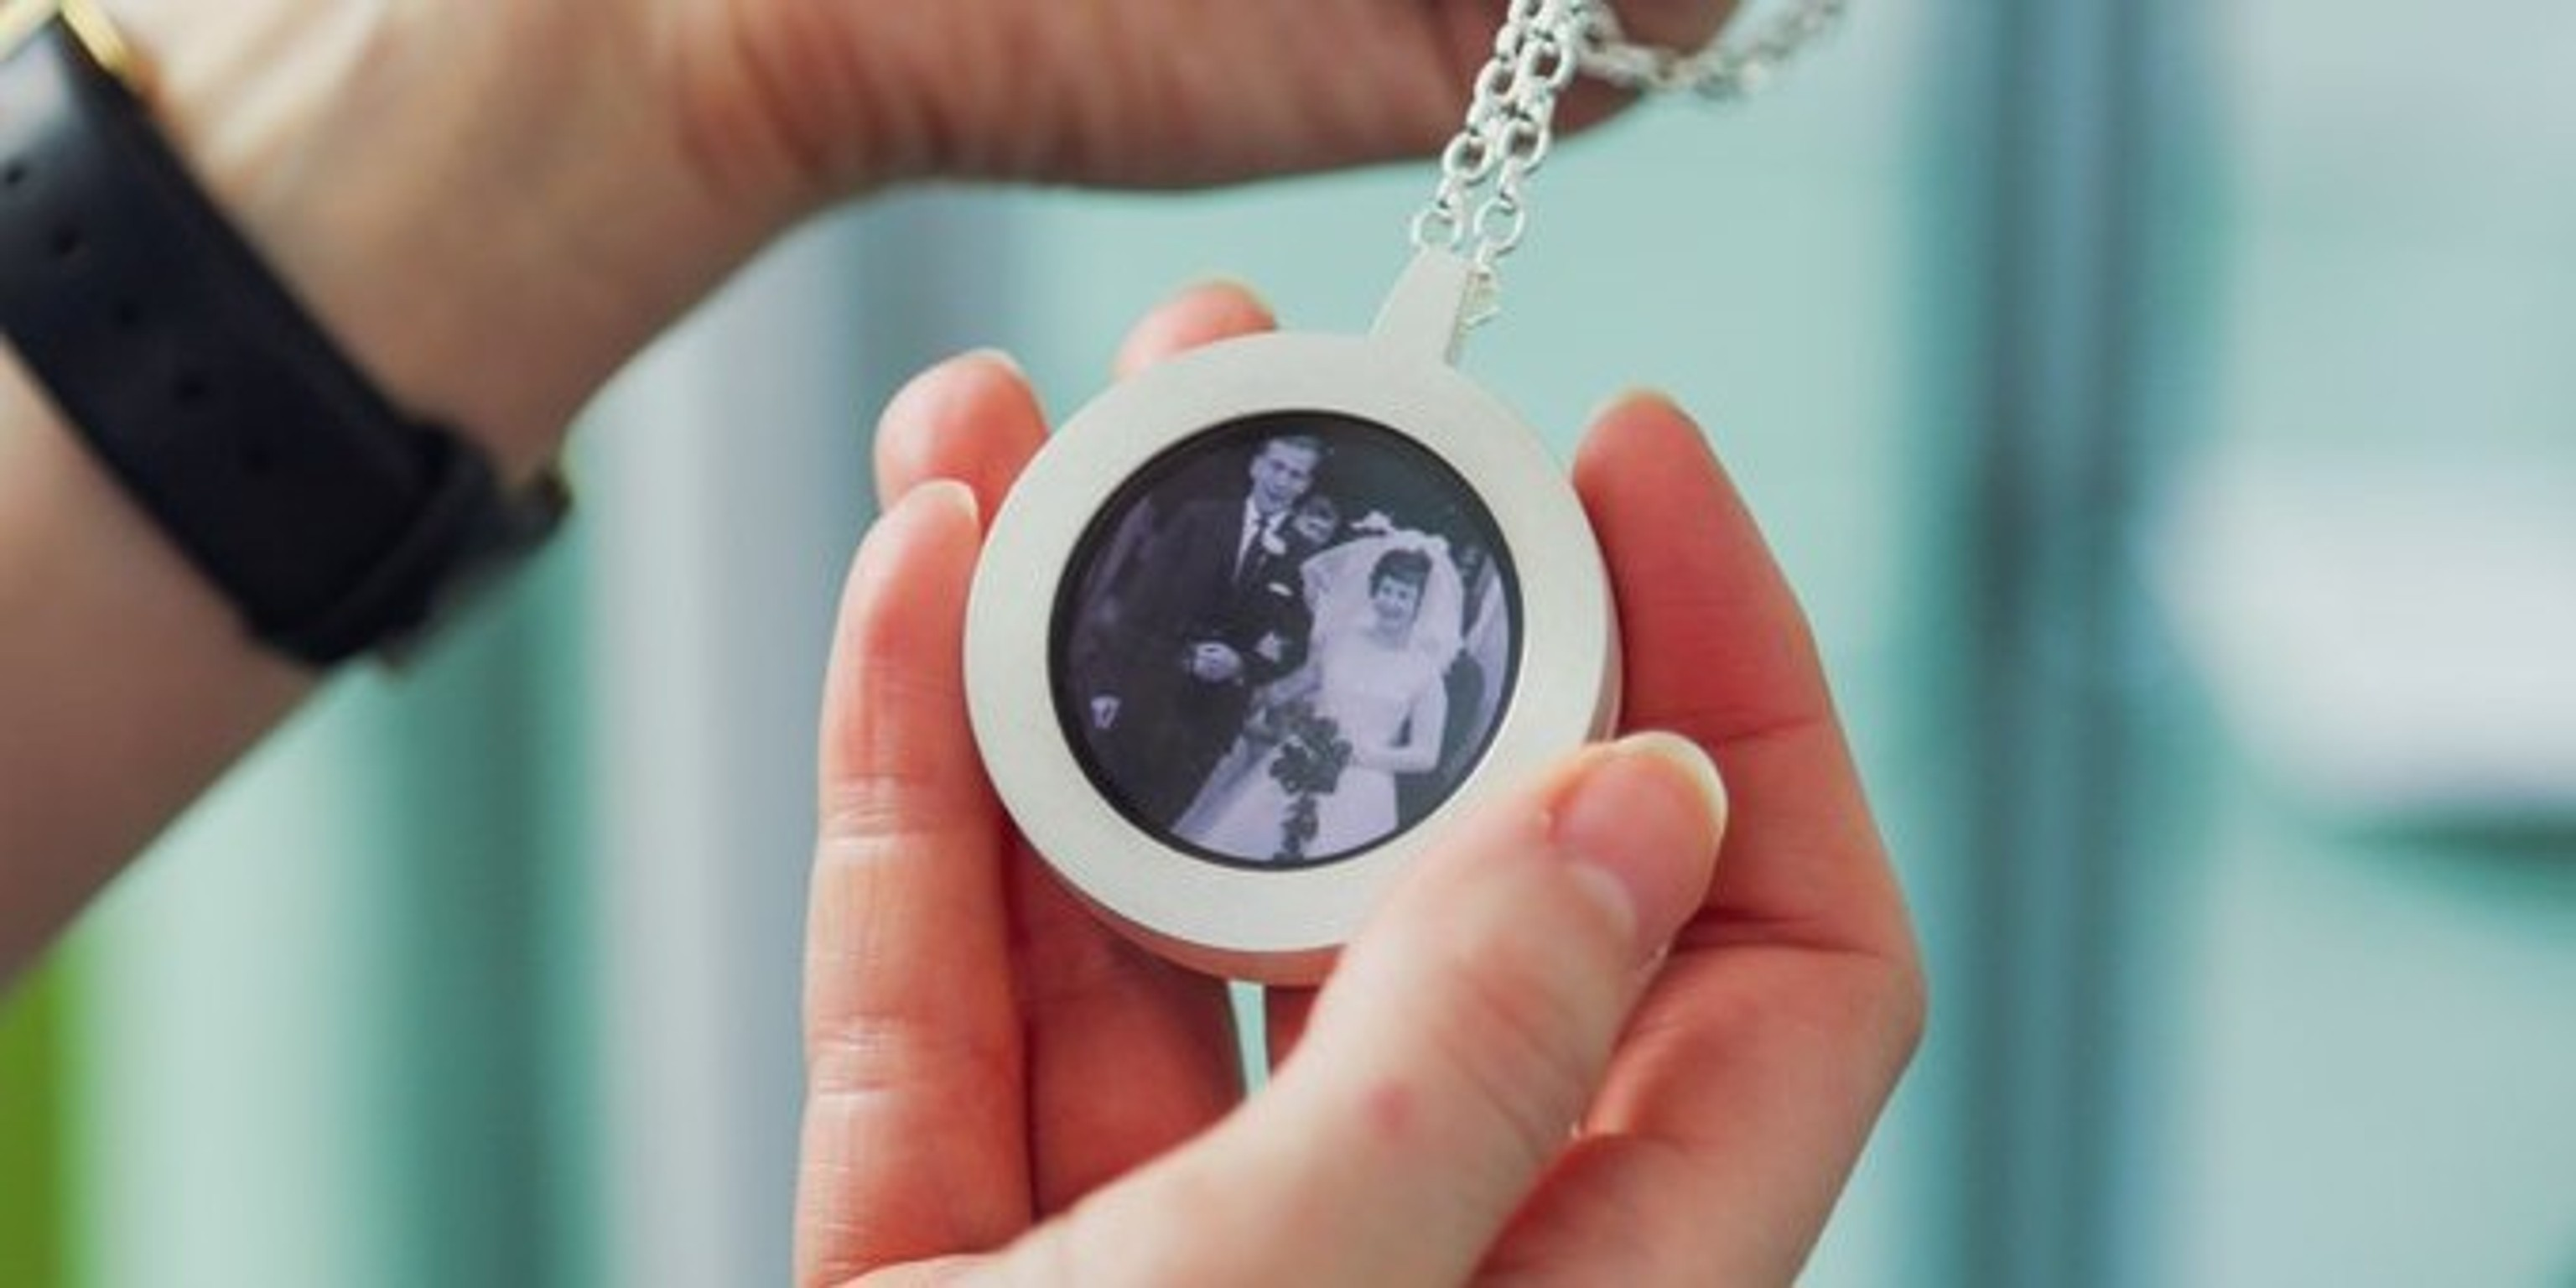 A digital locket containing photos of precious photos of the past and changing photos shared by family.